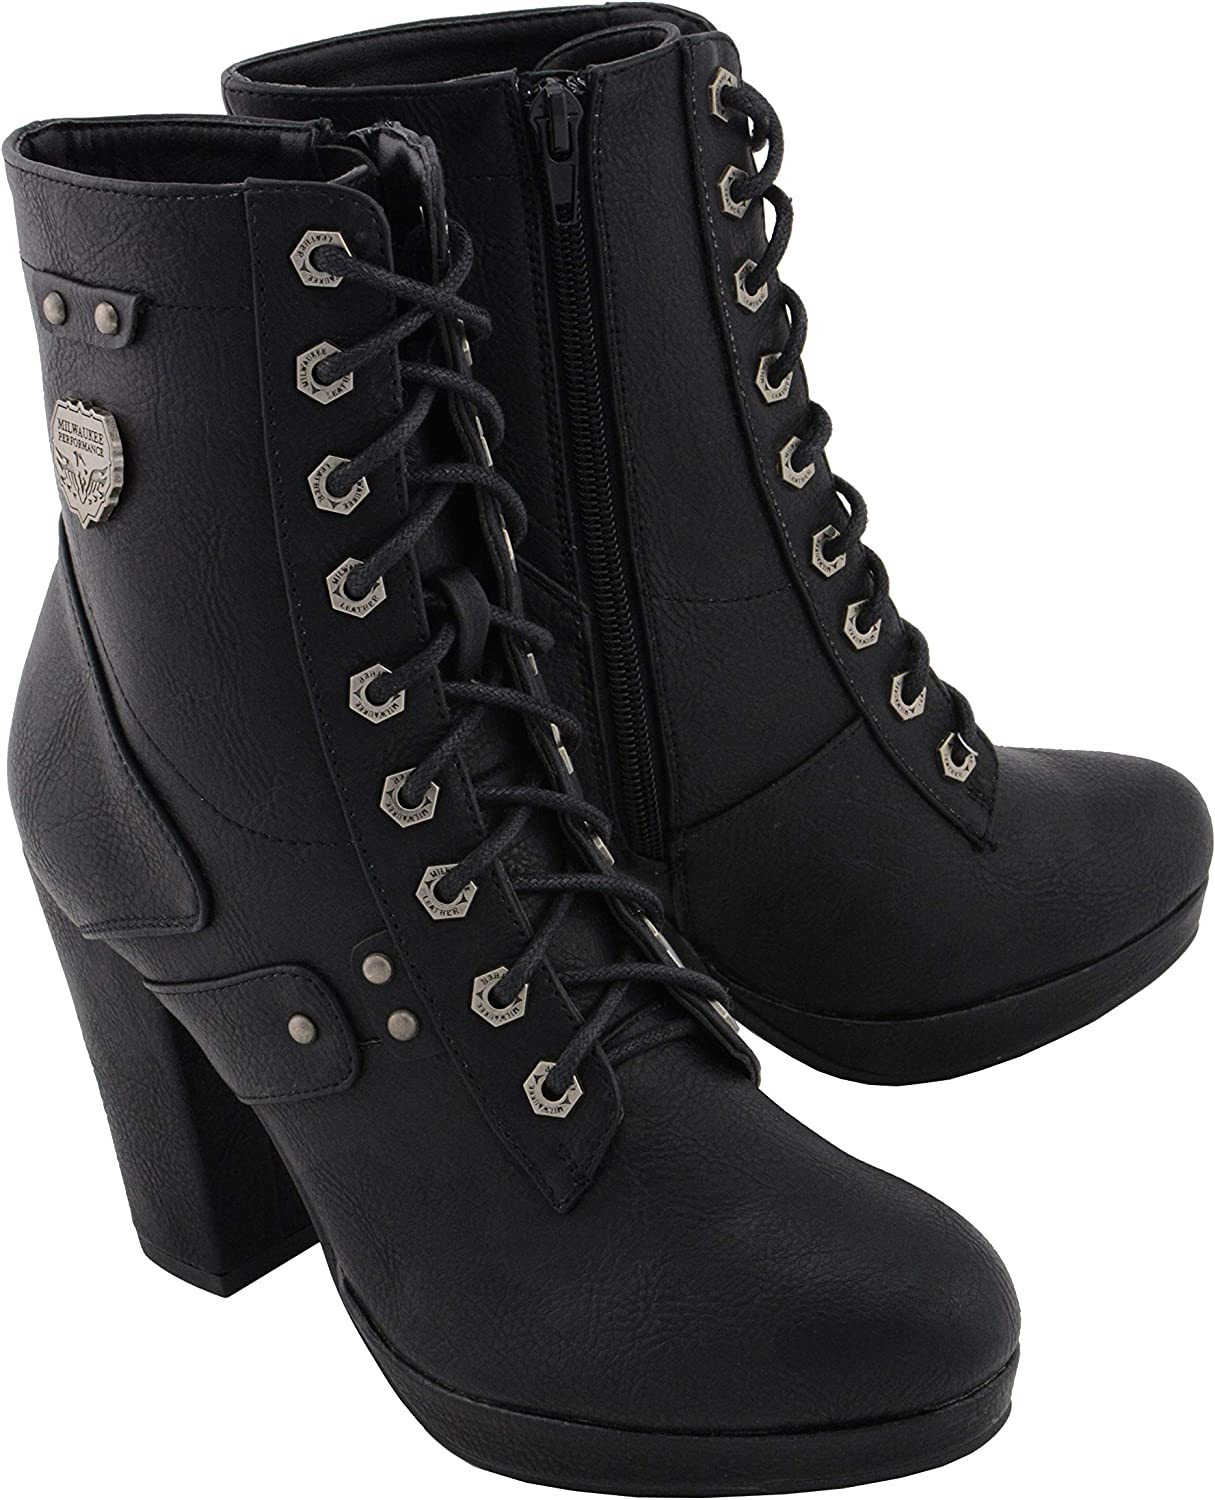 Milwaukee Leather MBL9418 Women's Black Lace-Up Platform Boots with Studded Accents